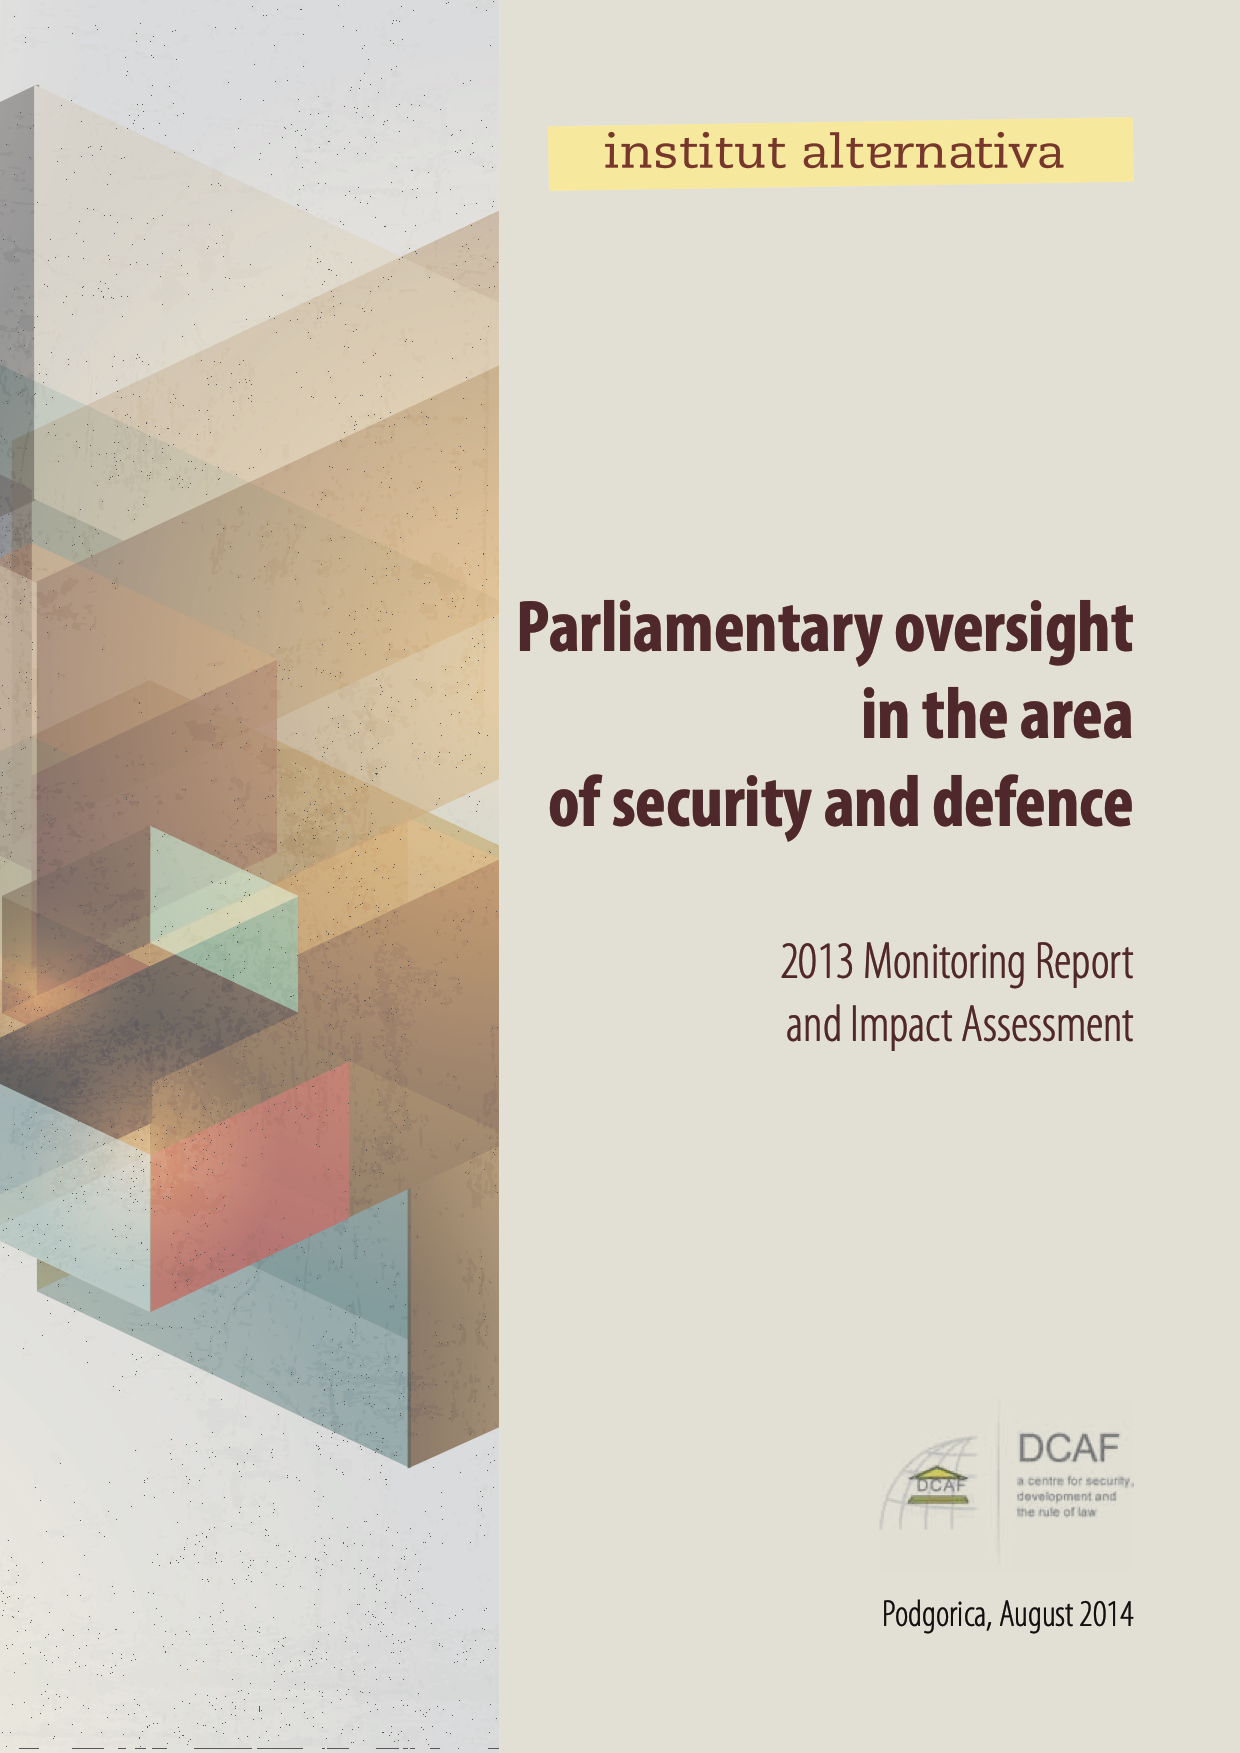 Parliamentary oversight in the area of security and defense - 2013 Monitoring Report and Impact Assessment